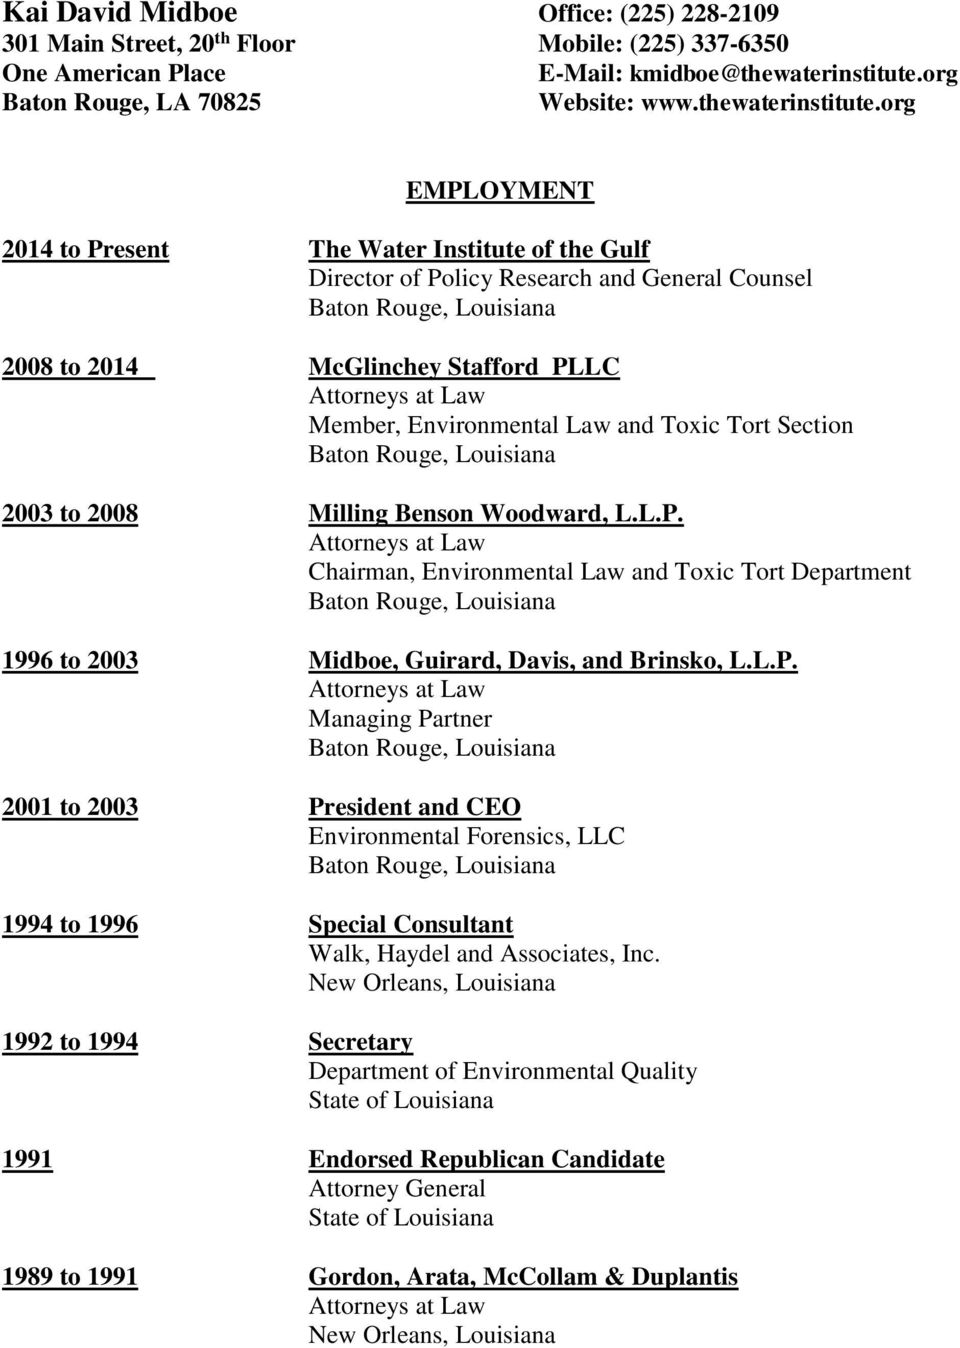 org EMPLOYMENT 2014 to Present The Water Institute of the Gulf Director of Policy Research and General Counsel 2008 to 2014 McGlinchey Stafford PLLC Member, Environmental Law and Toxic Tort Section